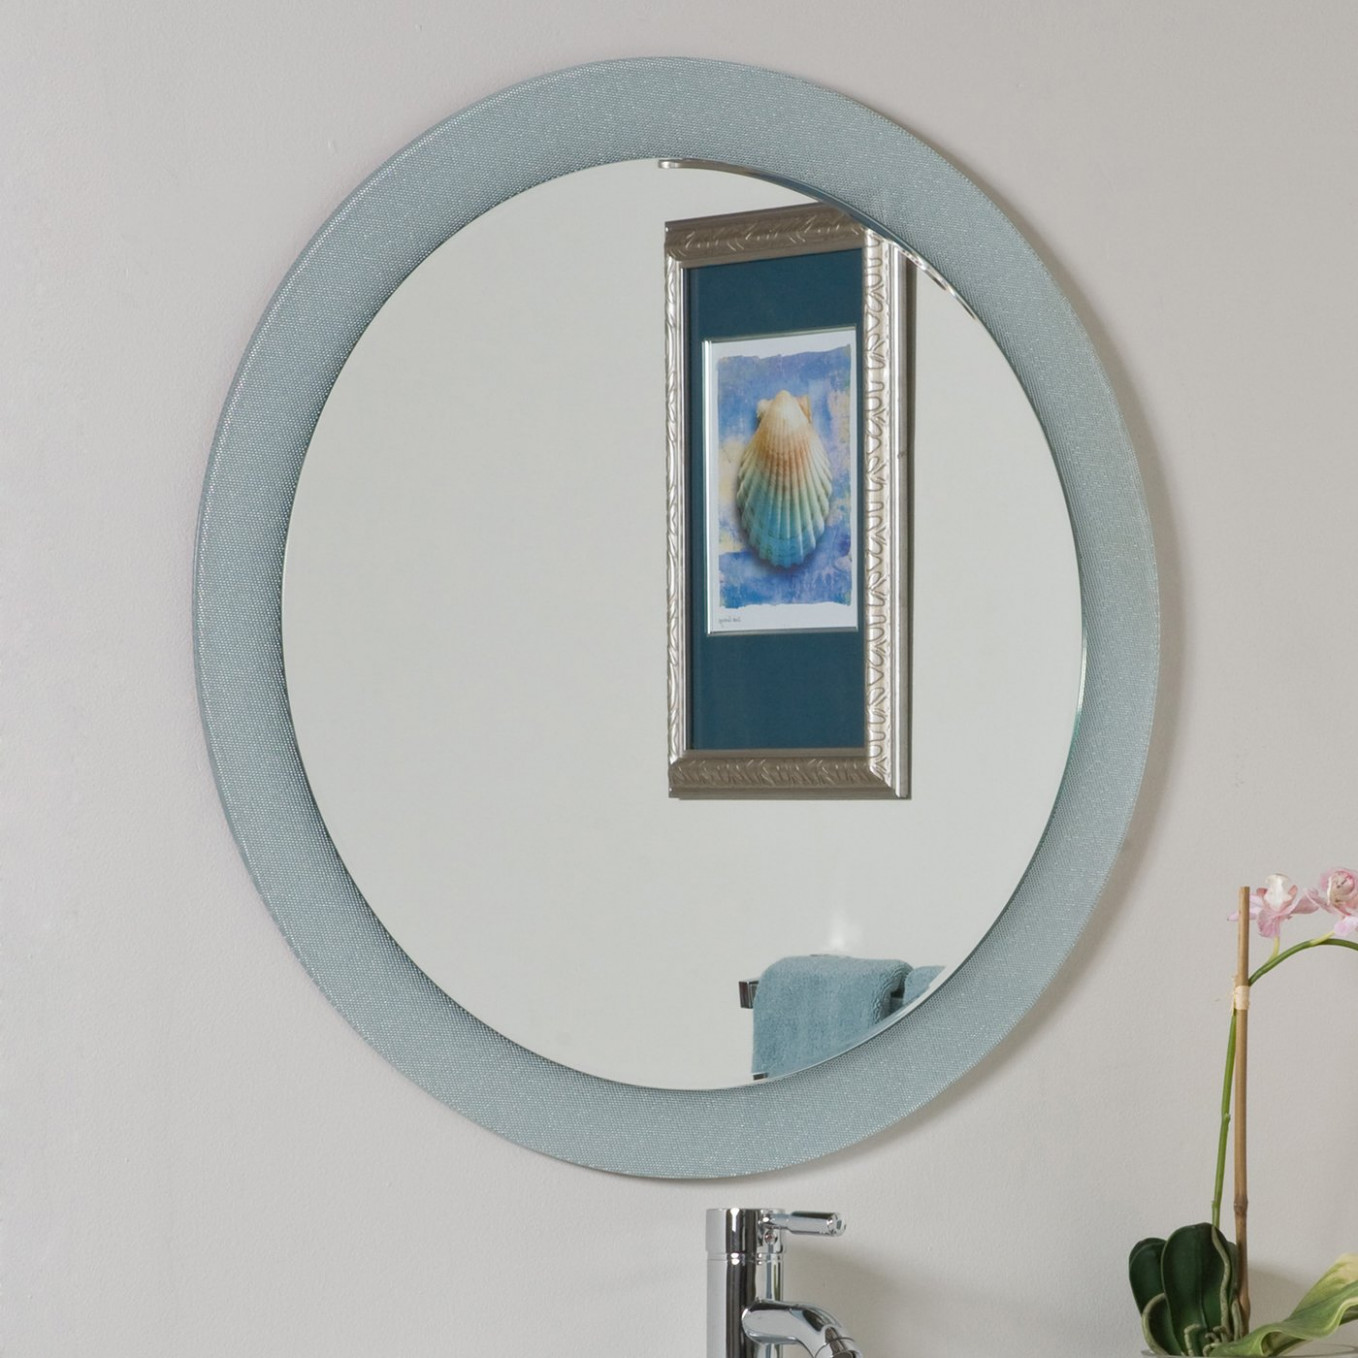 Decor Wonderland Zoe Bathroom Mirror | Lowe's Canada